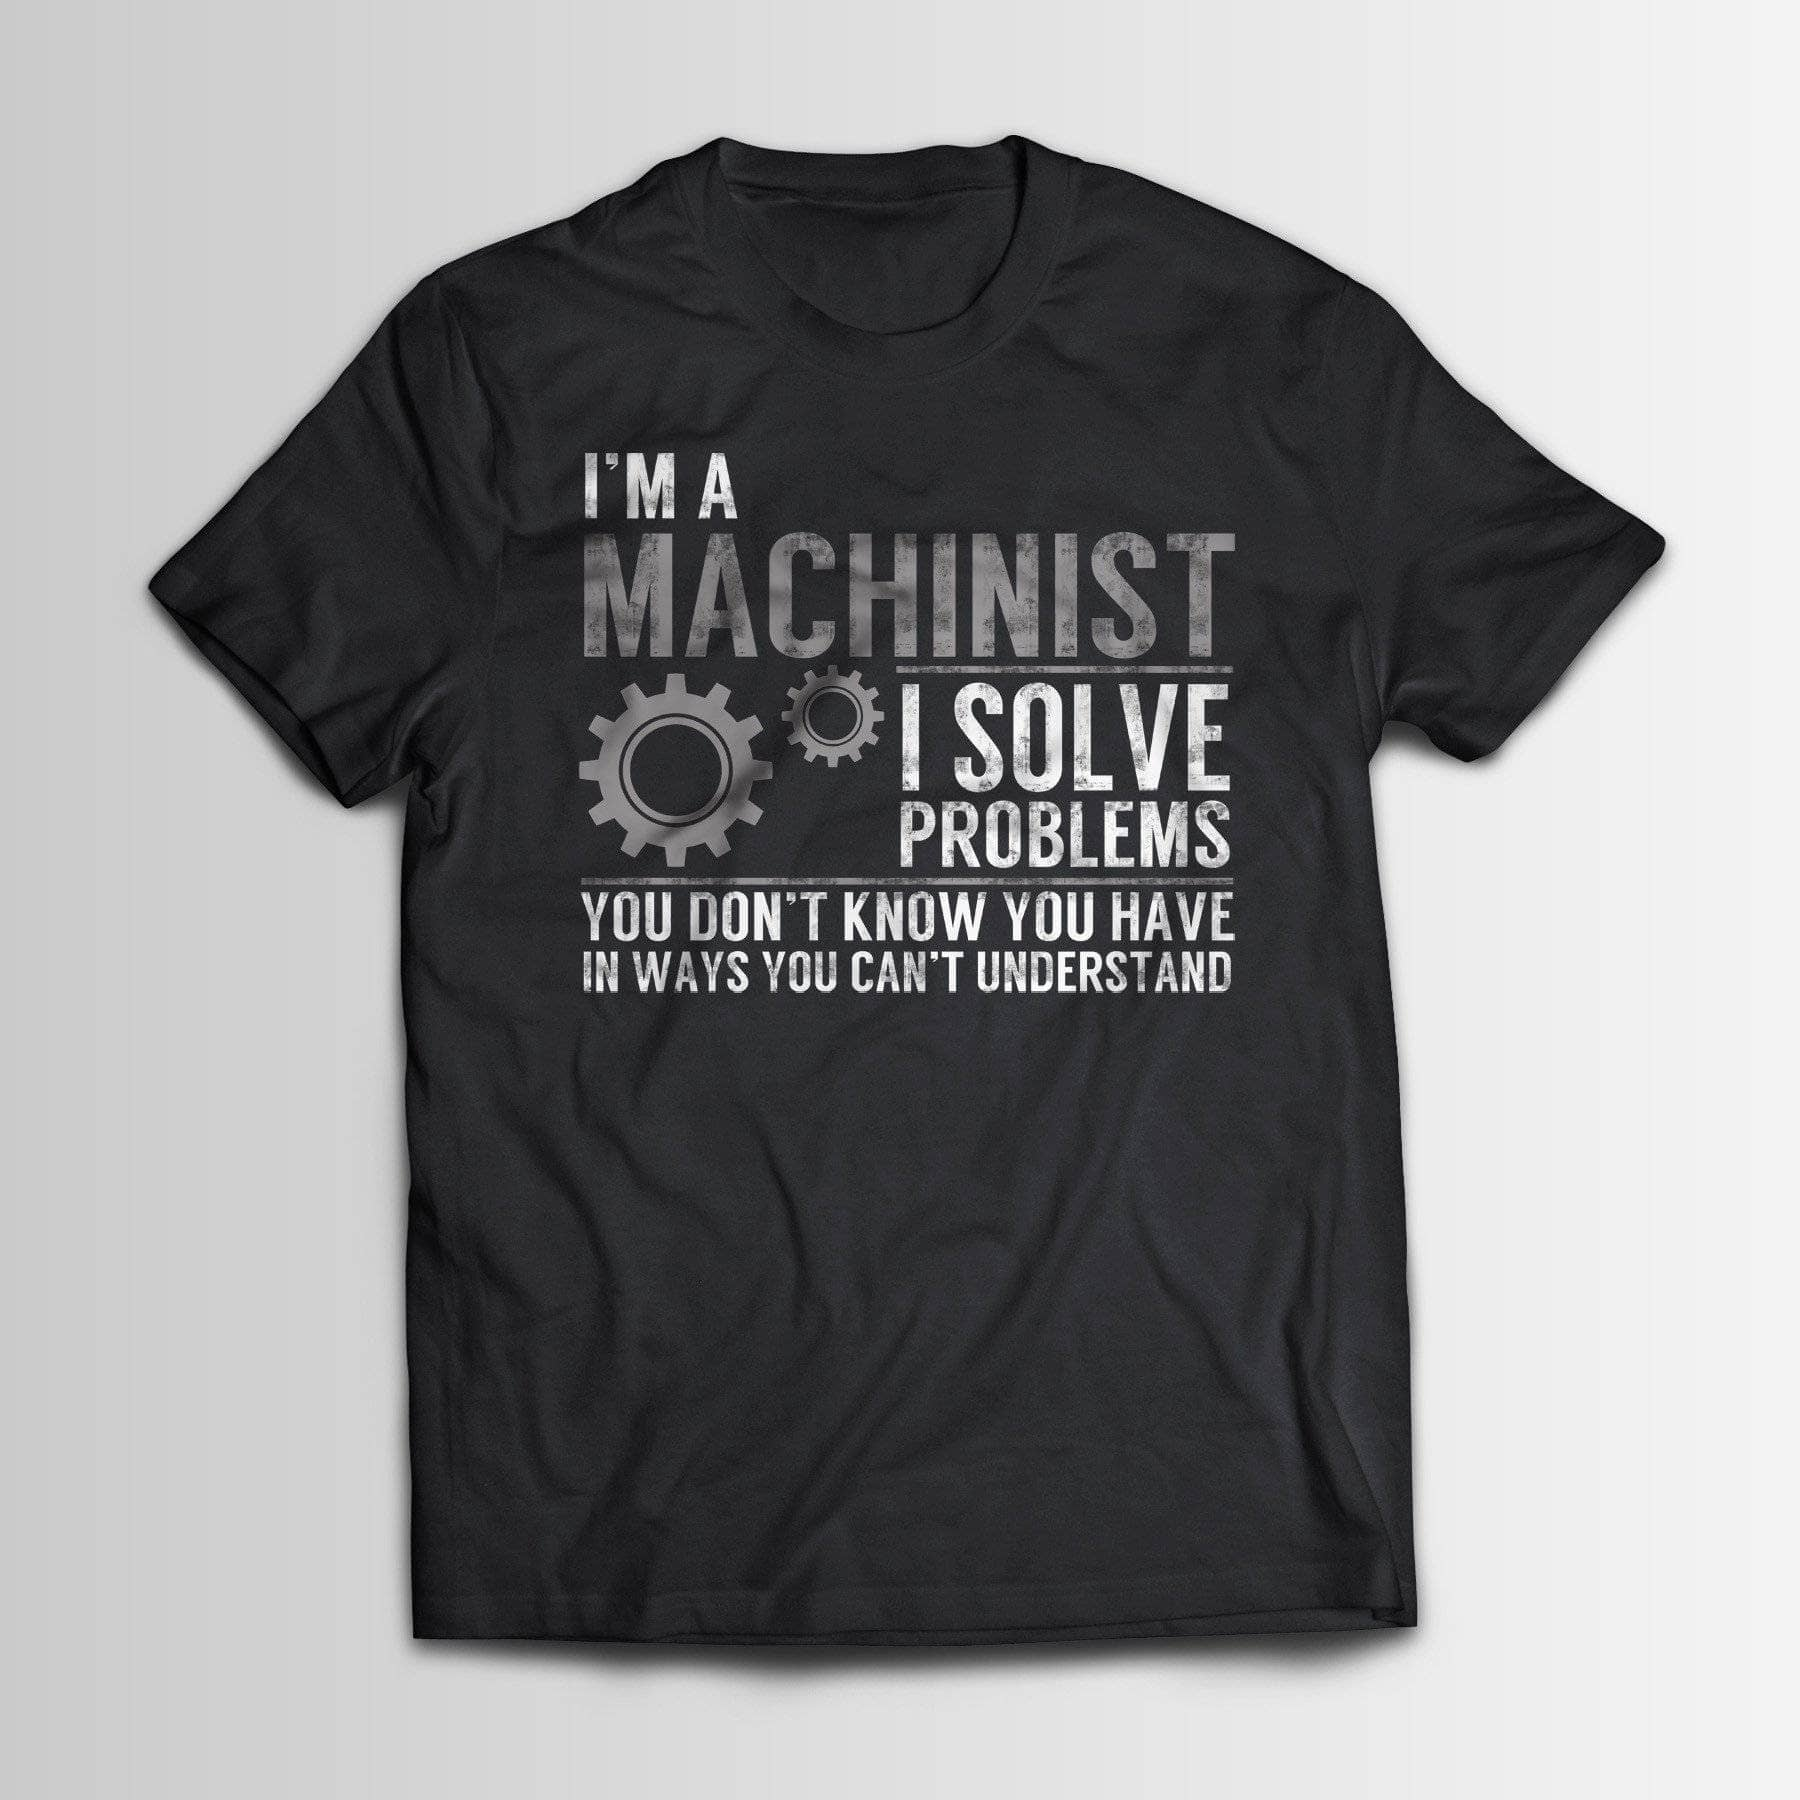 MACHINIST SOLVE PROBLEMS